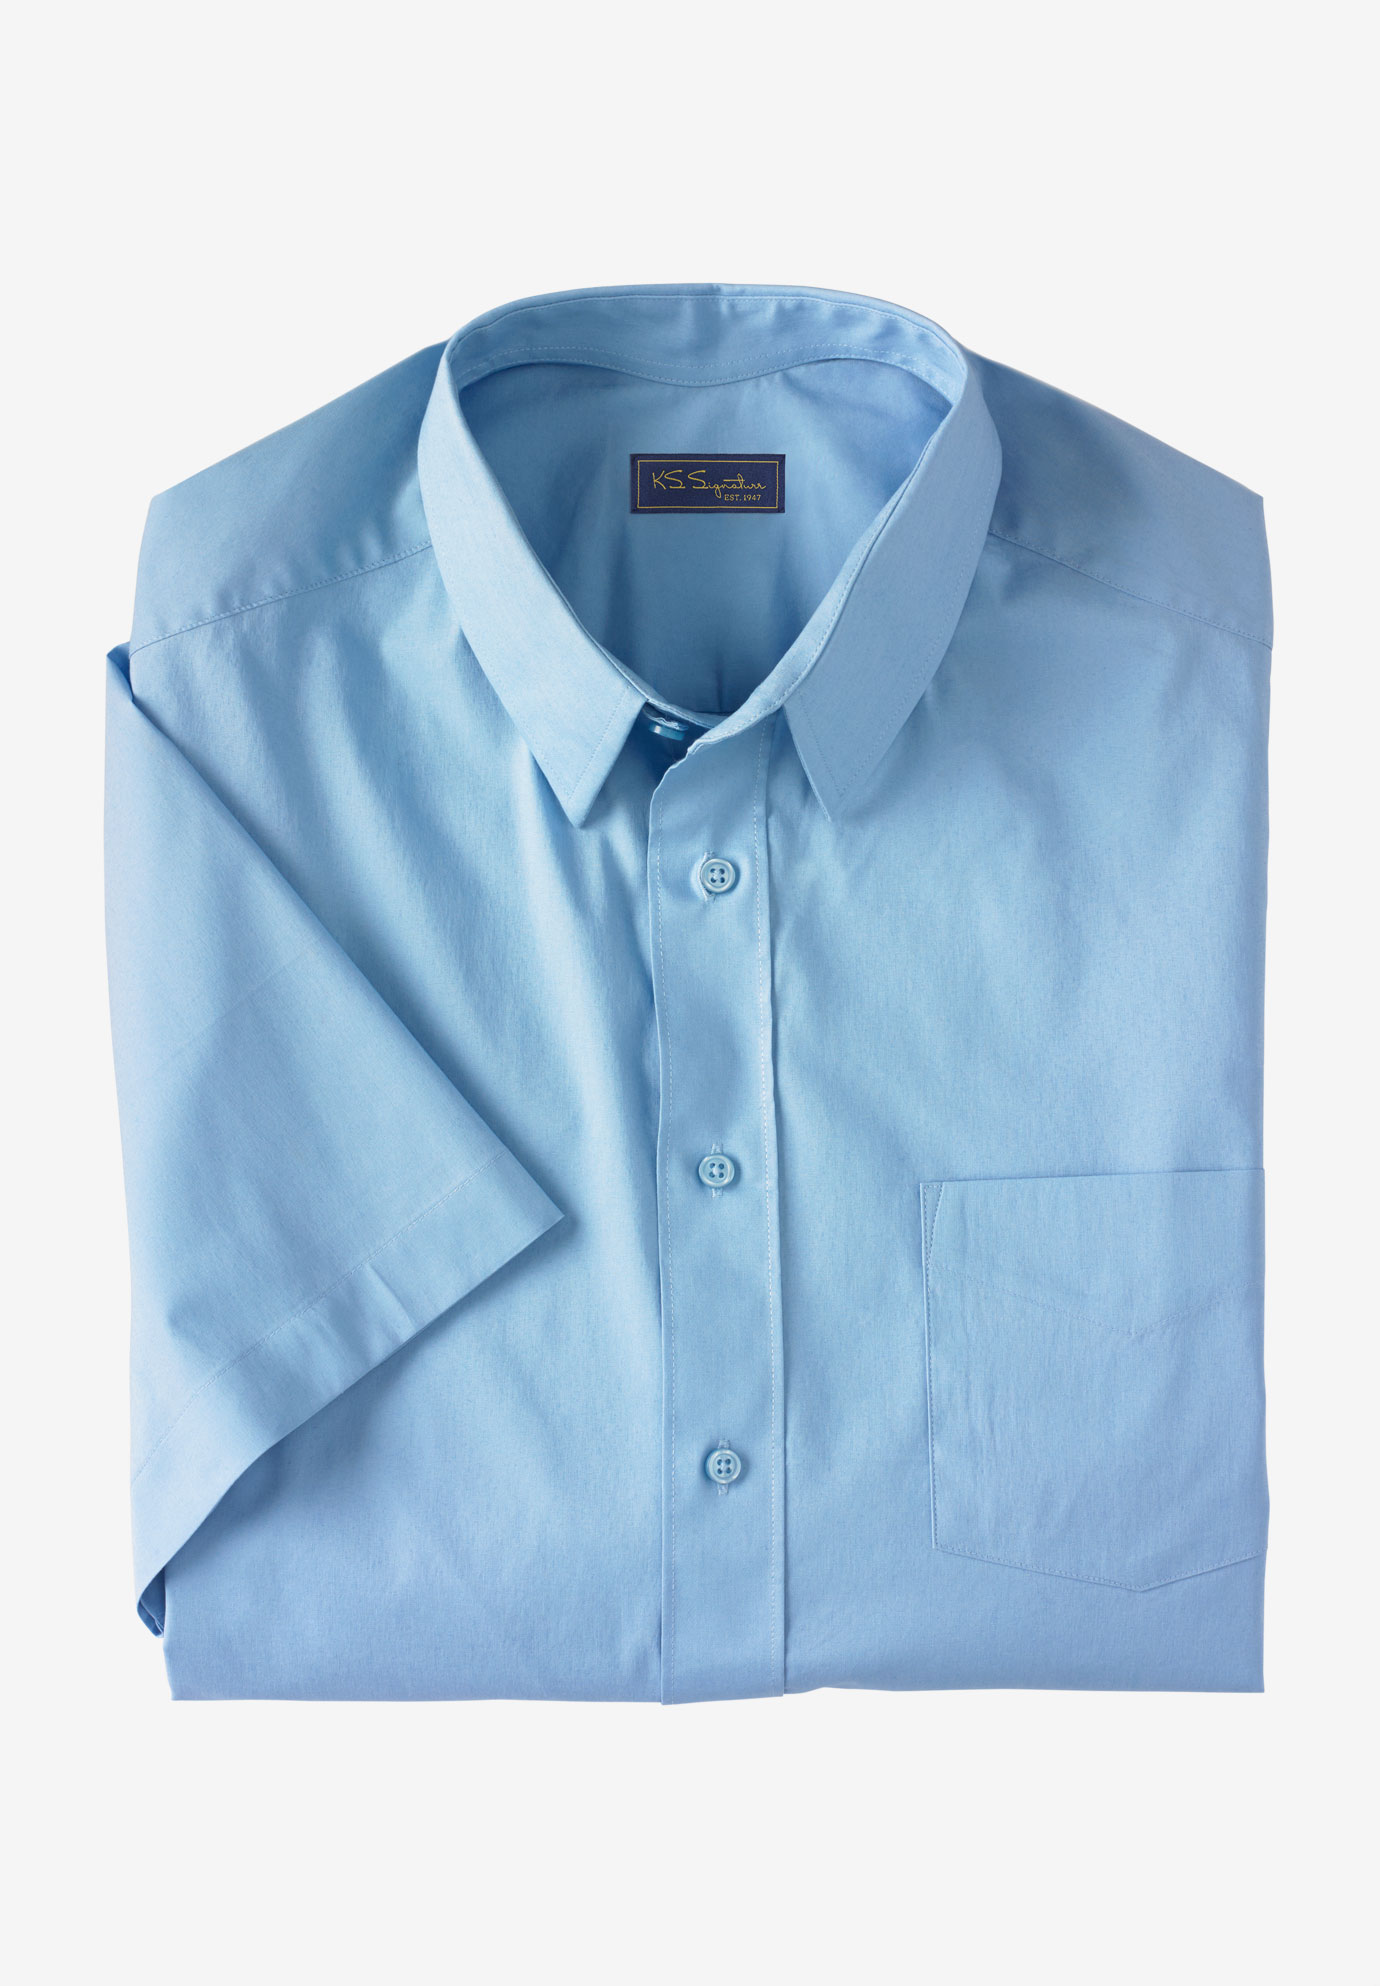 KS Signature Classic Fit Broadcloth Flex Short-Sleeve Dress Shirt,